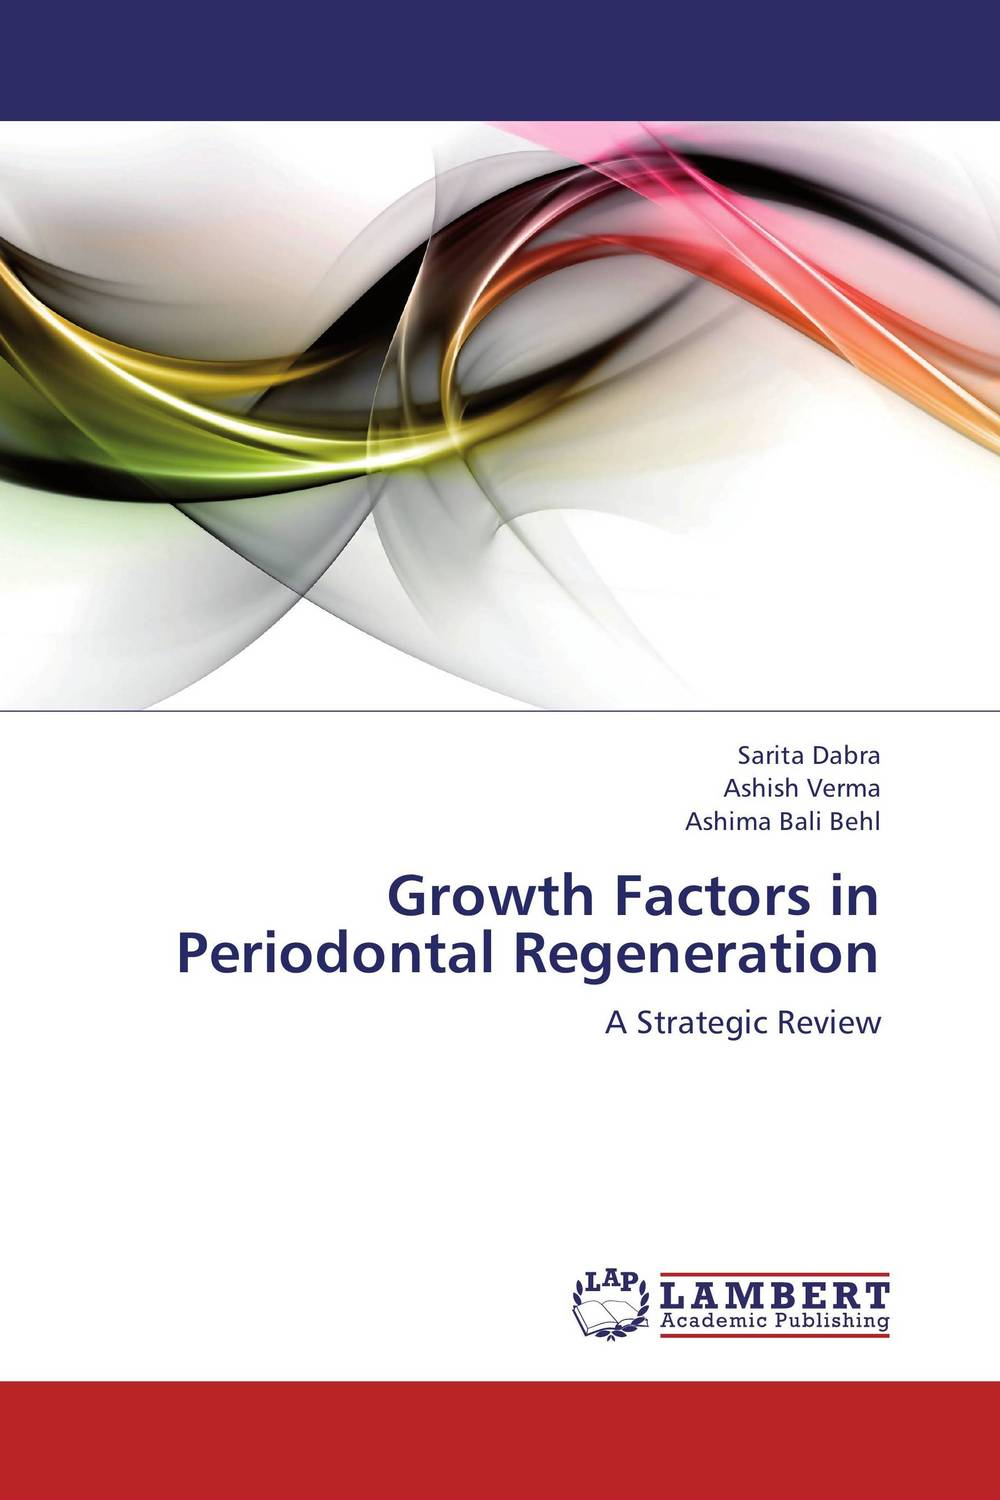 Growth Factors in Periodontal Regeneration growth factors